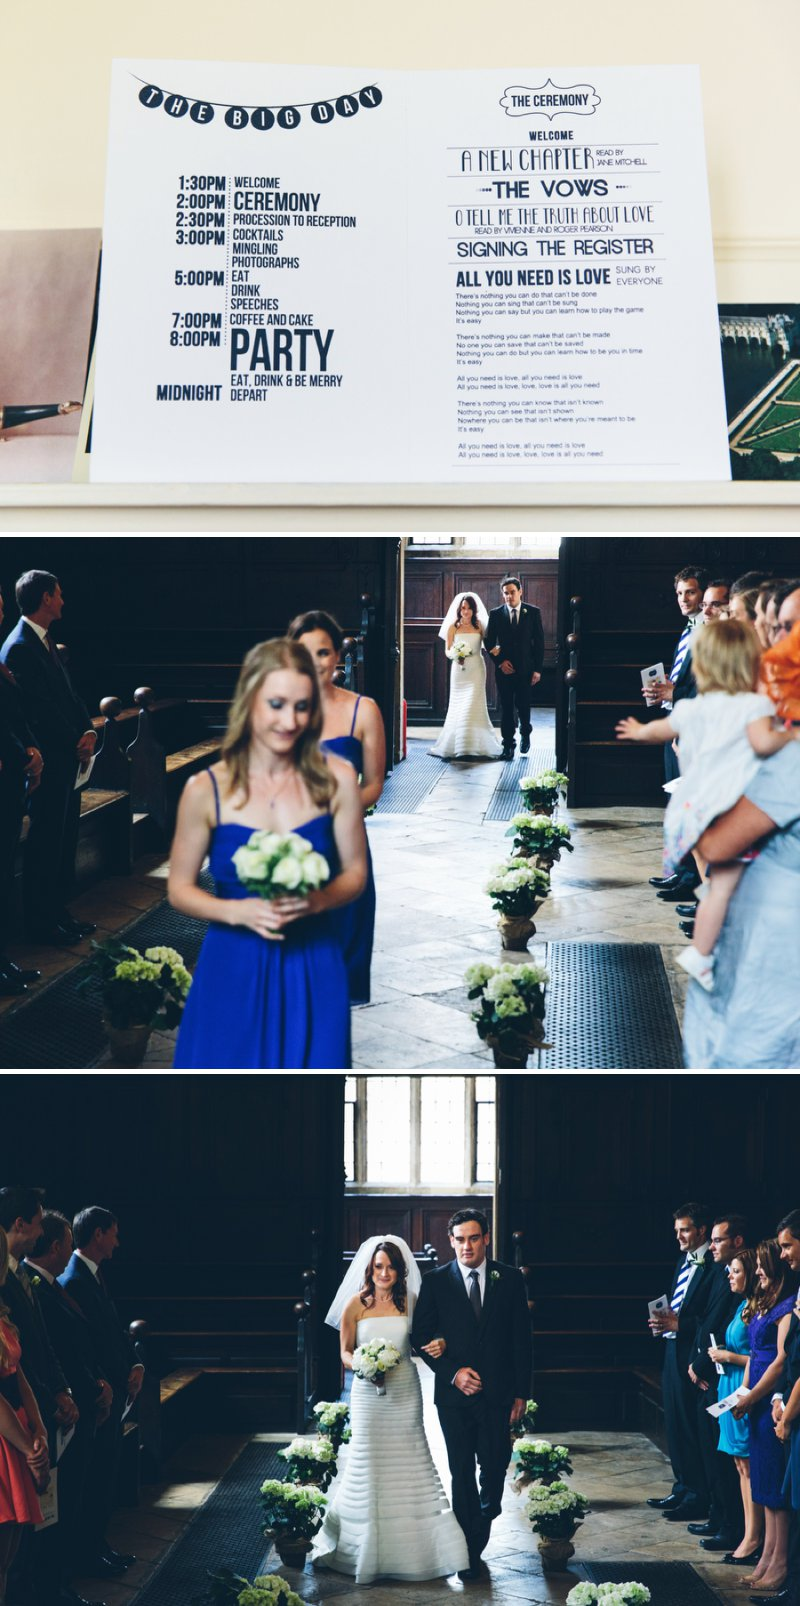 Elegant Contemporary Wedding At The Bodleian Library Queens College Oxford With Bride In Ulanova By Pronovias And Jimmy Choo Heels With Groom In Suit By Cad And The Dandy And Bridesmaids In Royal Blue Images By Mister Phill 3